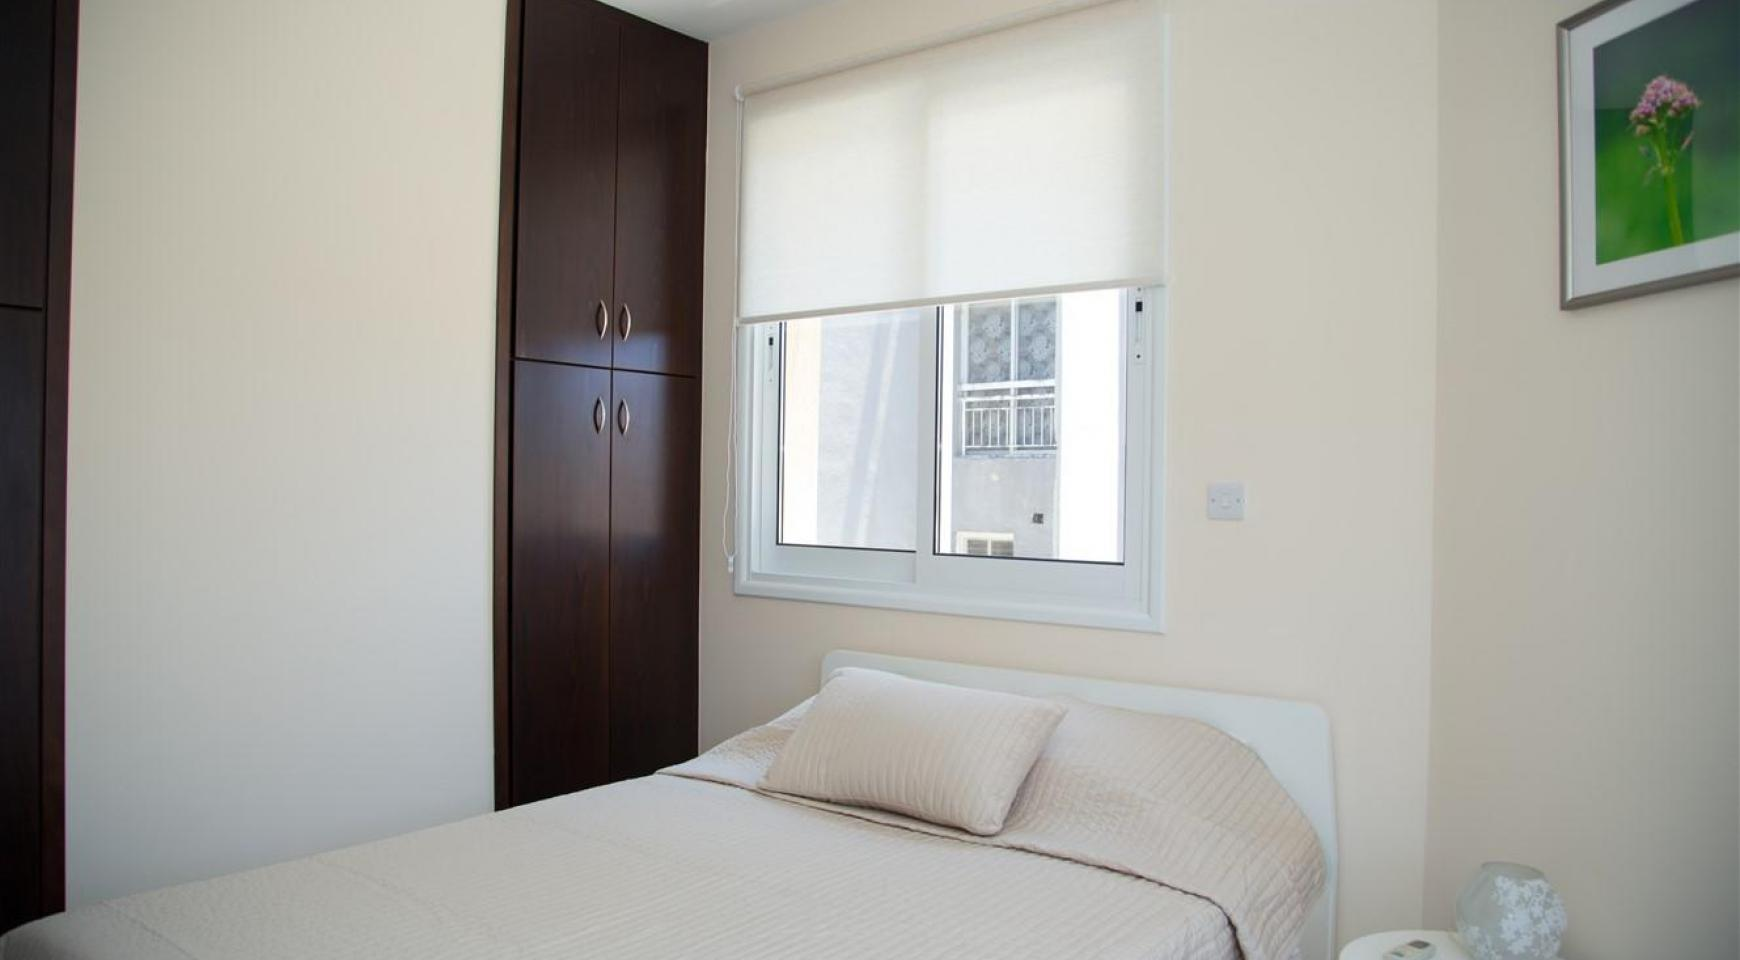 Luxury One Bedroom Apartment Frida 203 in the Tourist Area - 9